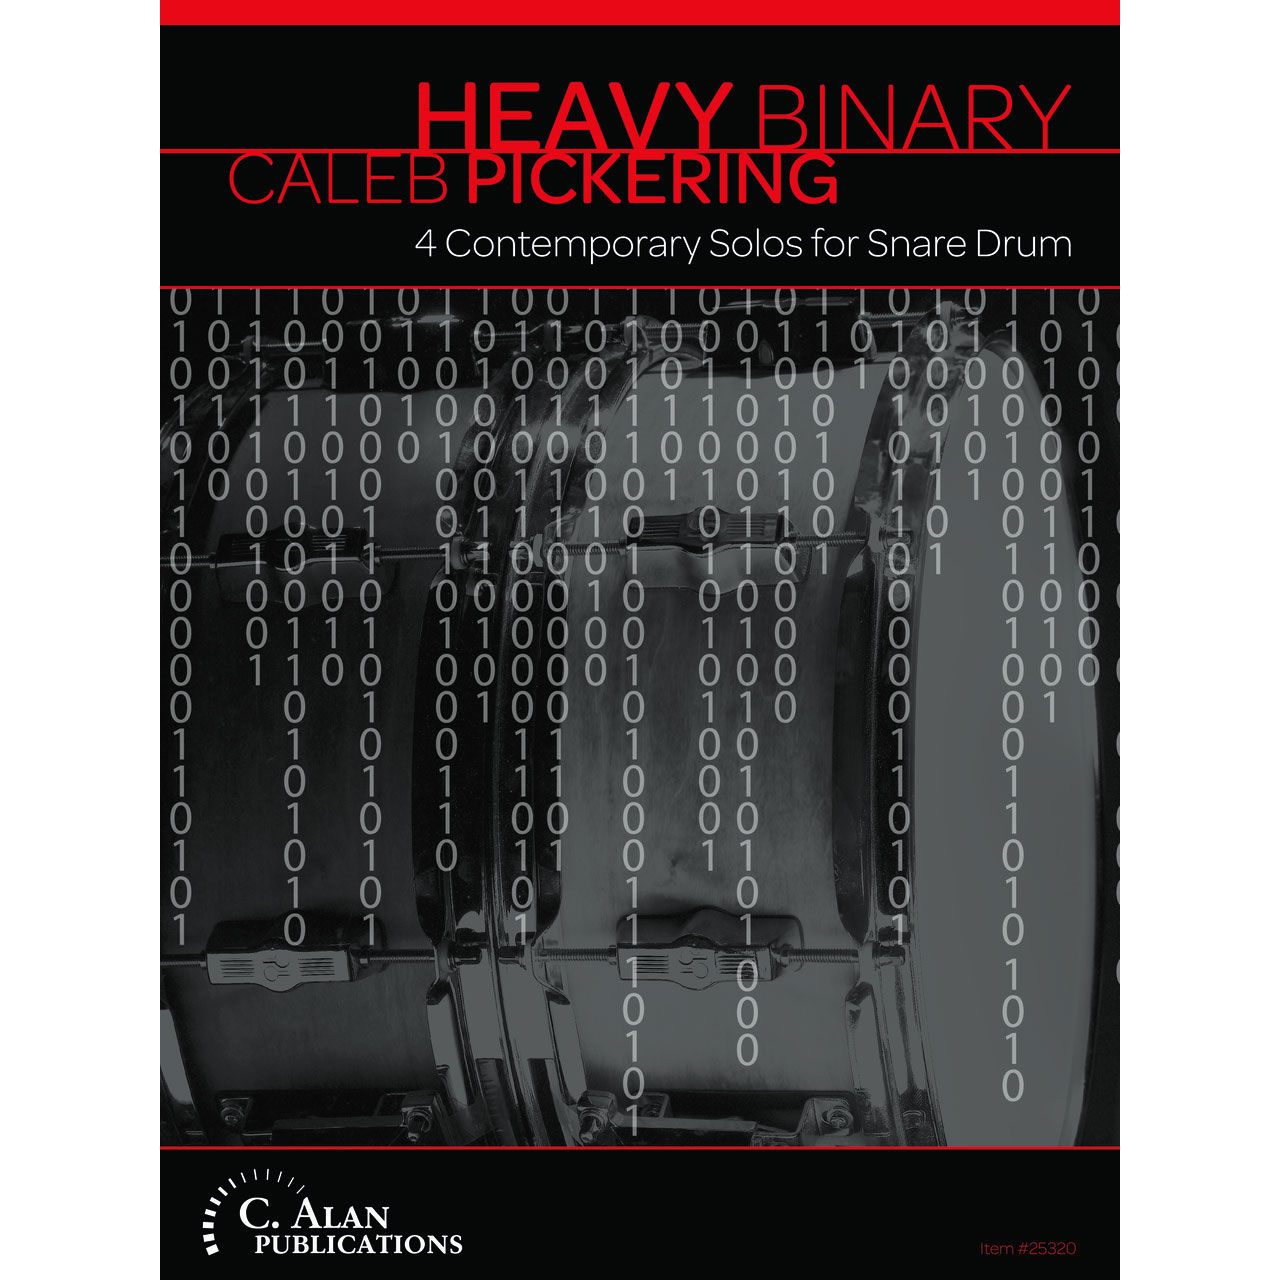 Heavy Binary: 4 Contemporary Solos for Snare Drum by Caleb Pickering